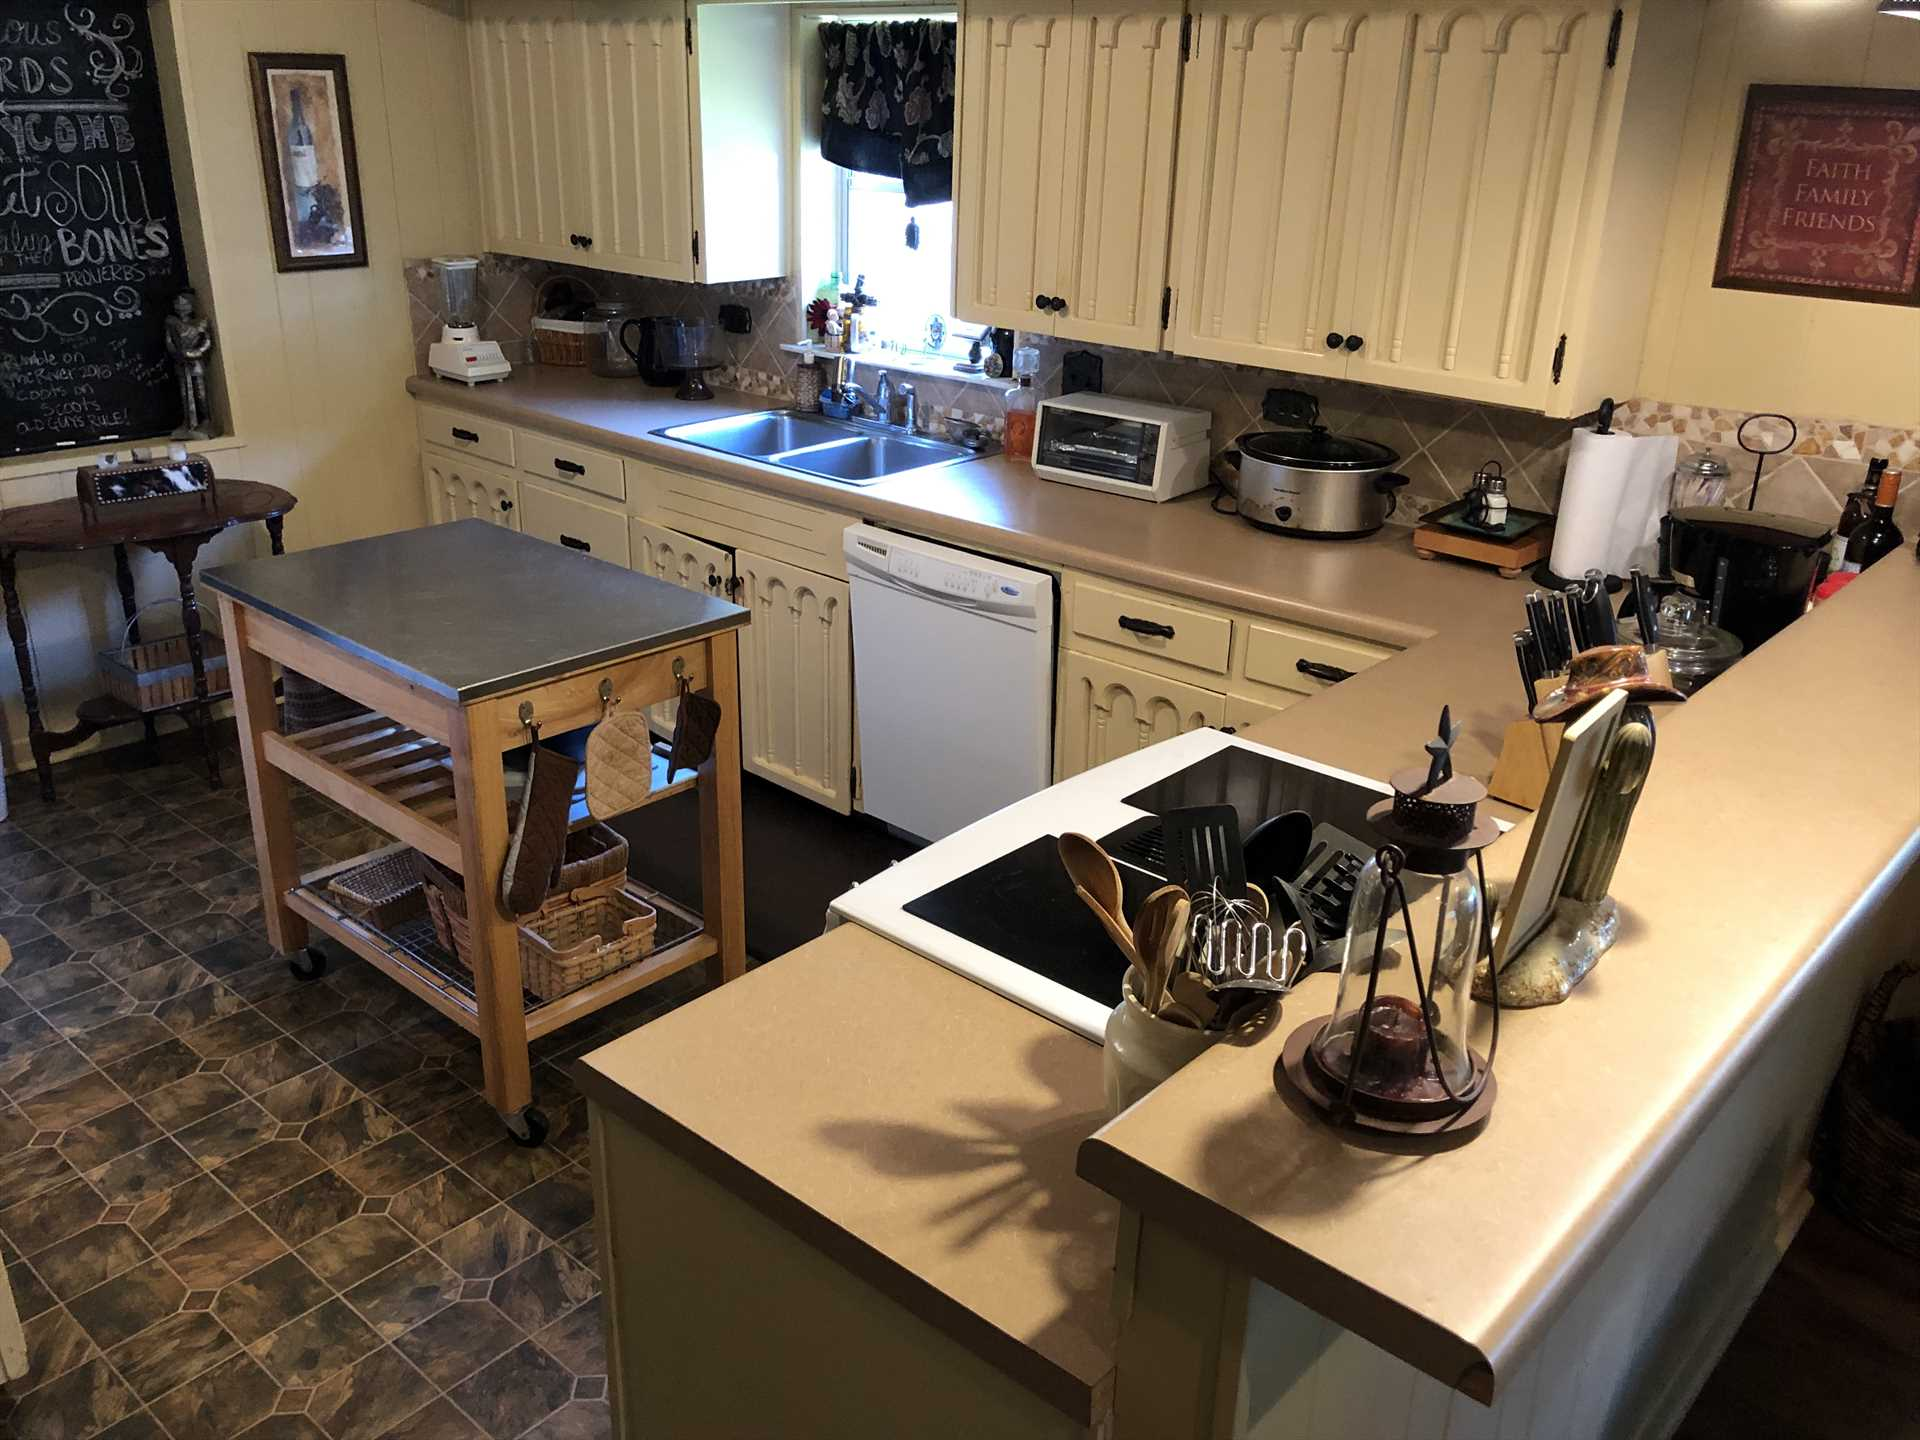 The big country kitchen is stocked with all the appliances and utensils your crew will need for a delicious home-cooked meal!